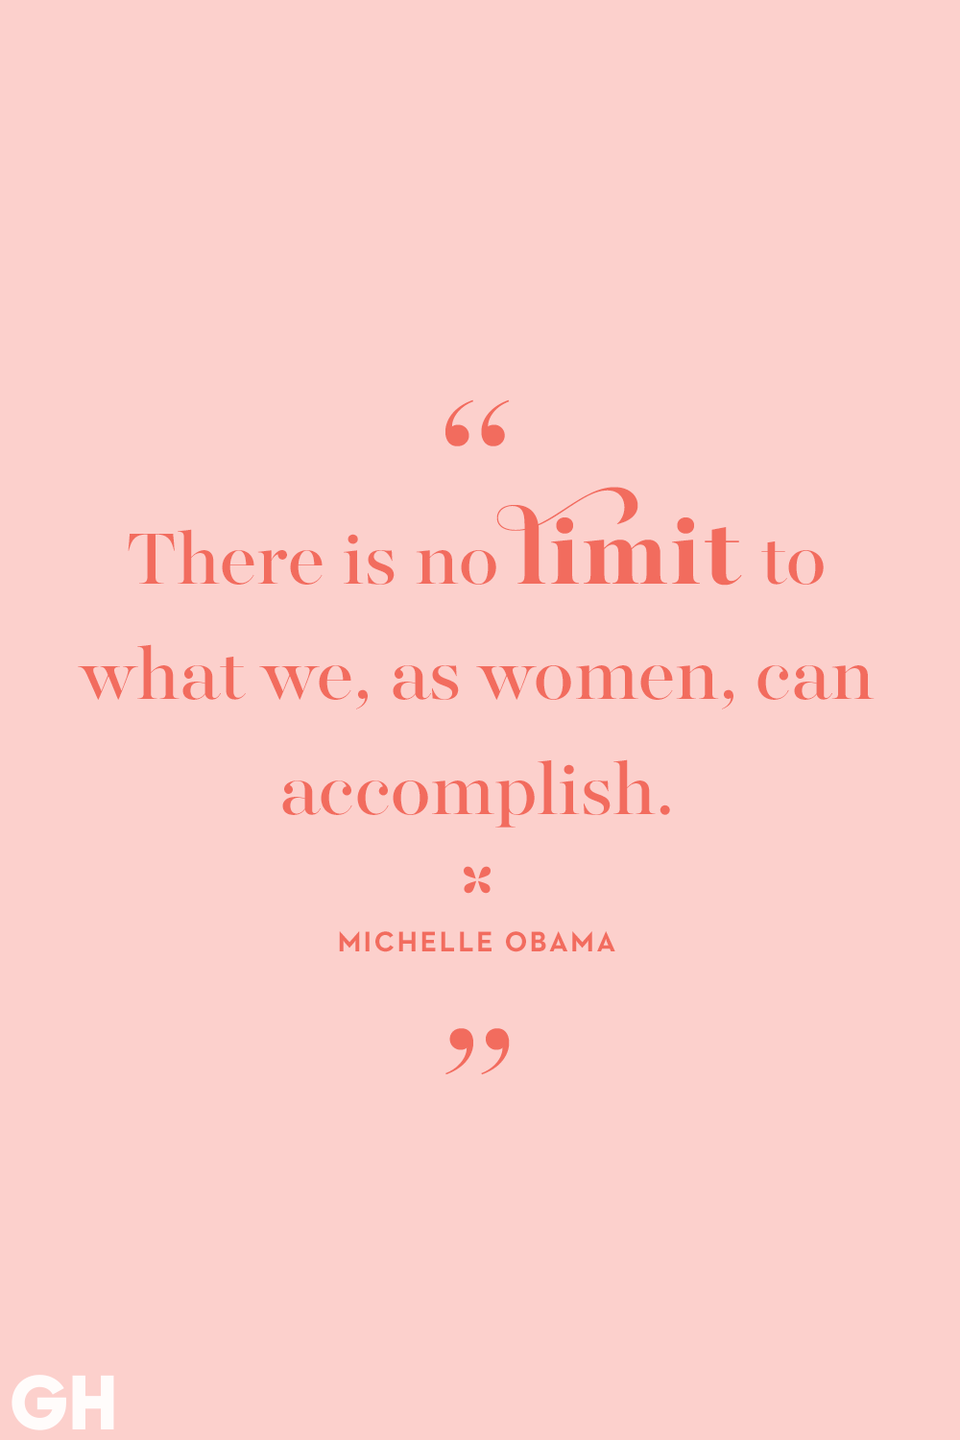 <p>There is no limit to what we, as women, can accomplish.</p>